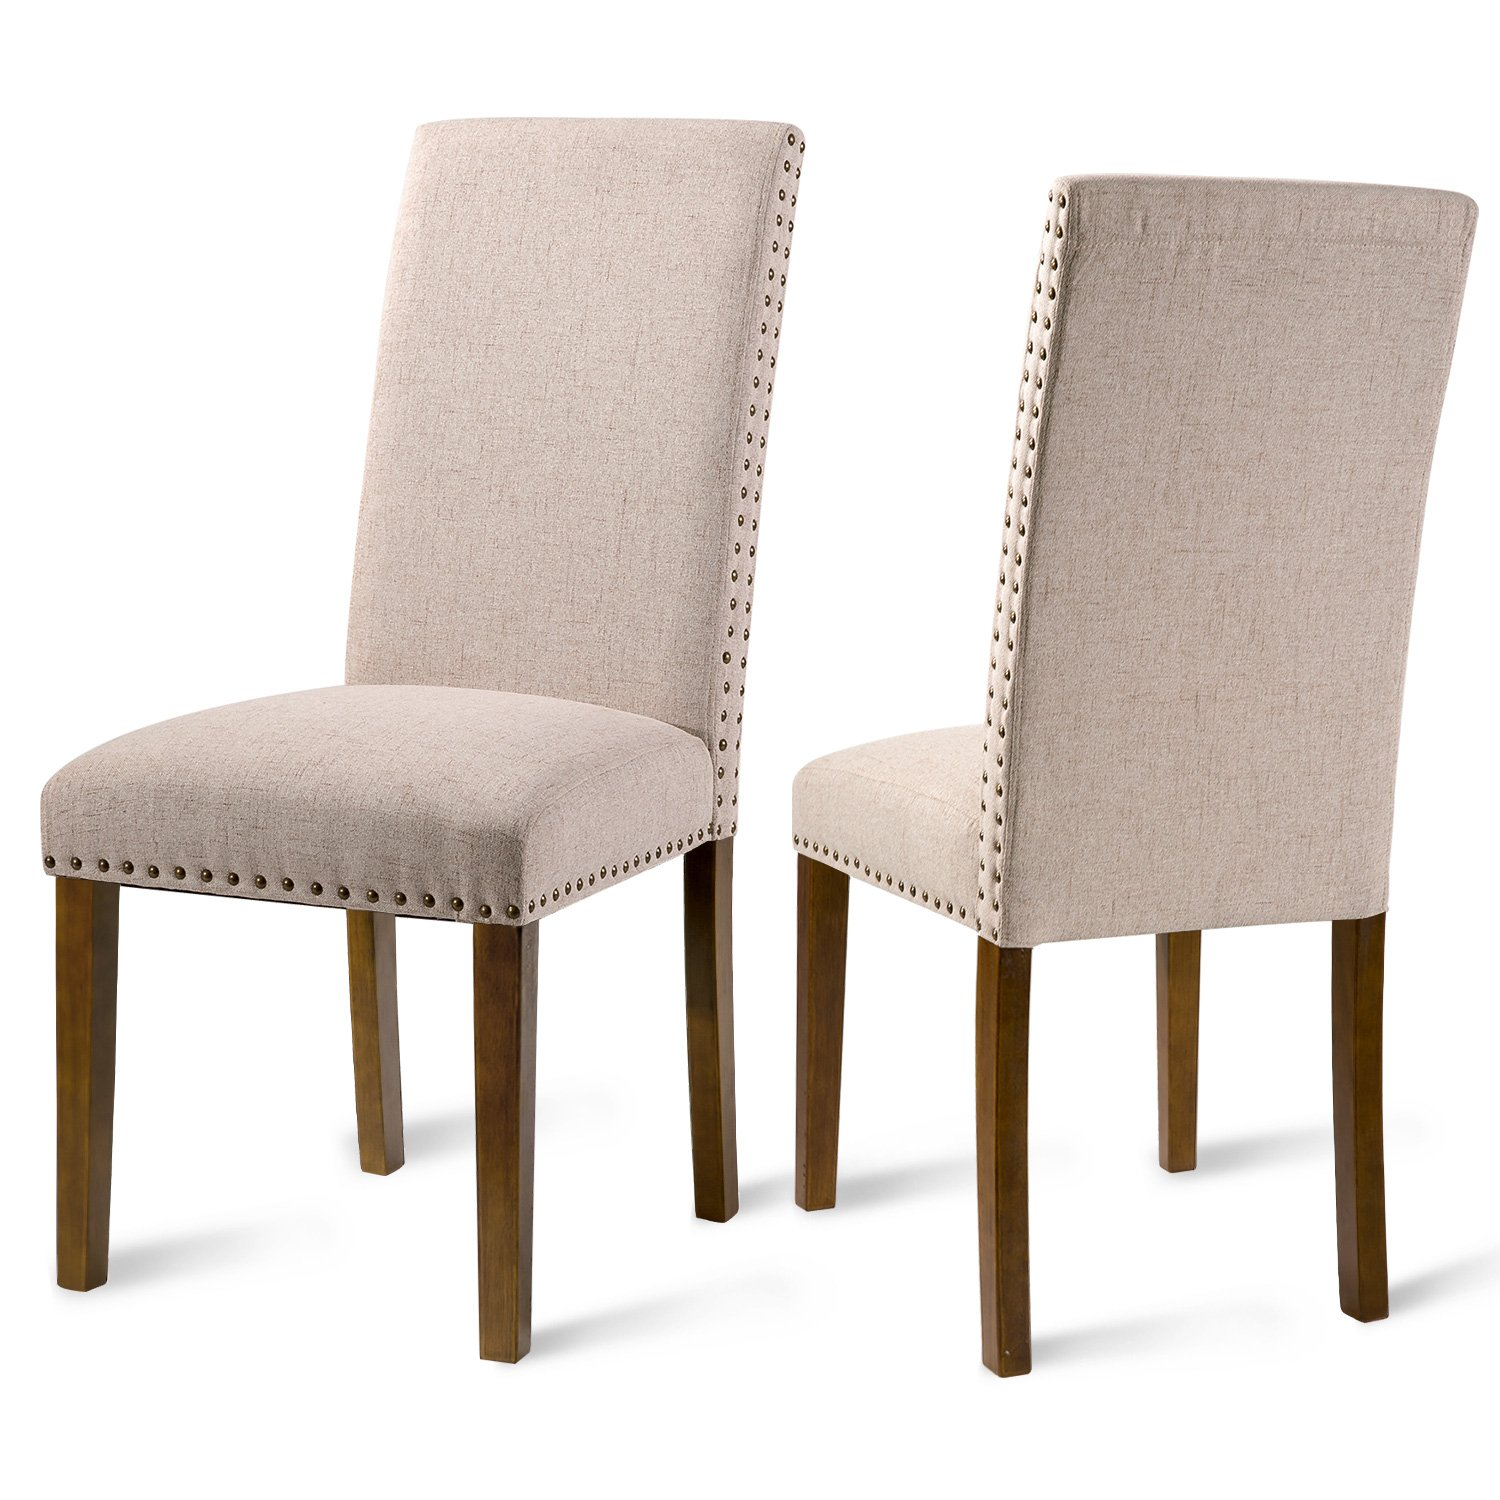 Merax Set of 2 Fabric Dining Chairs with Copper Nails and Solid Wood Legs (Beige)